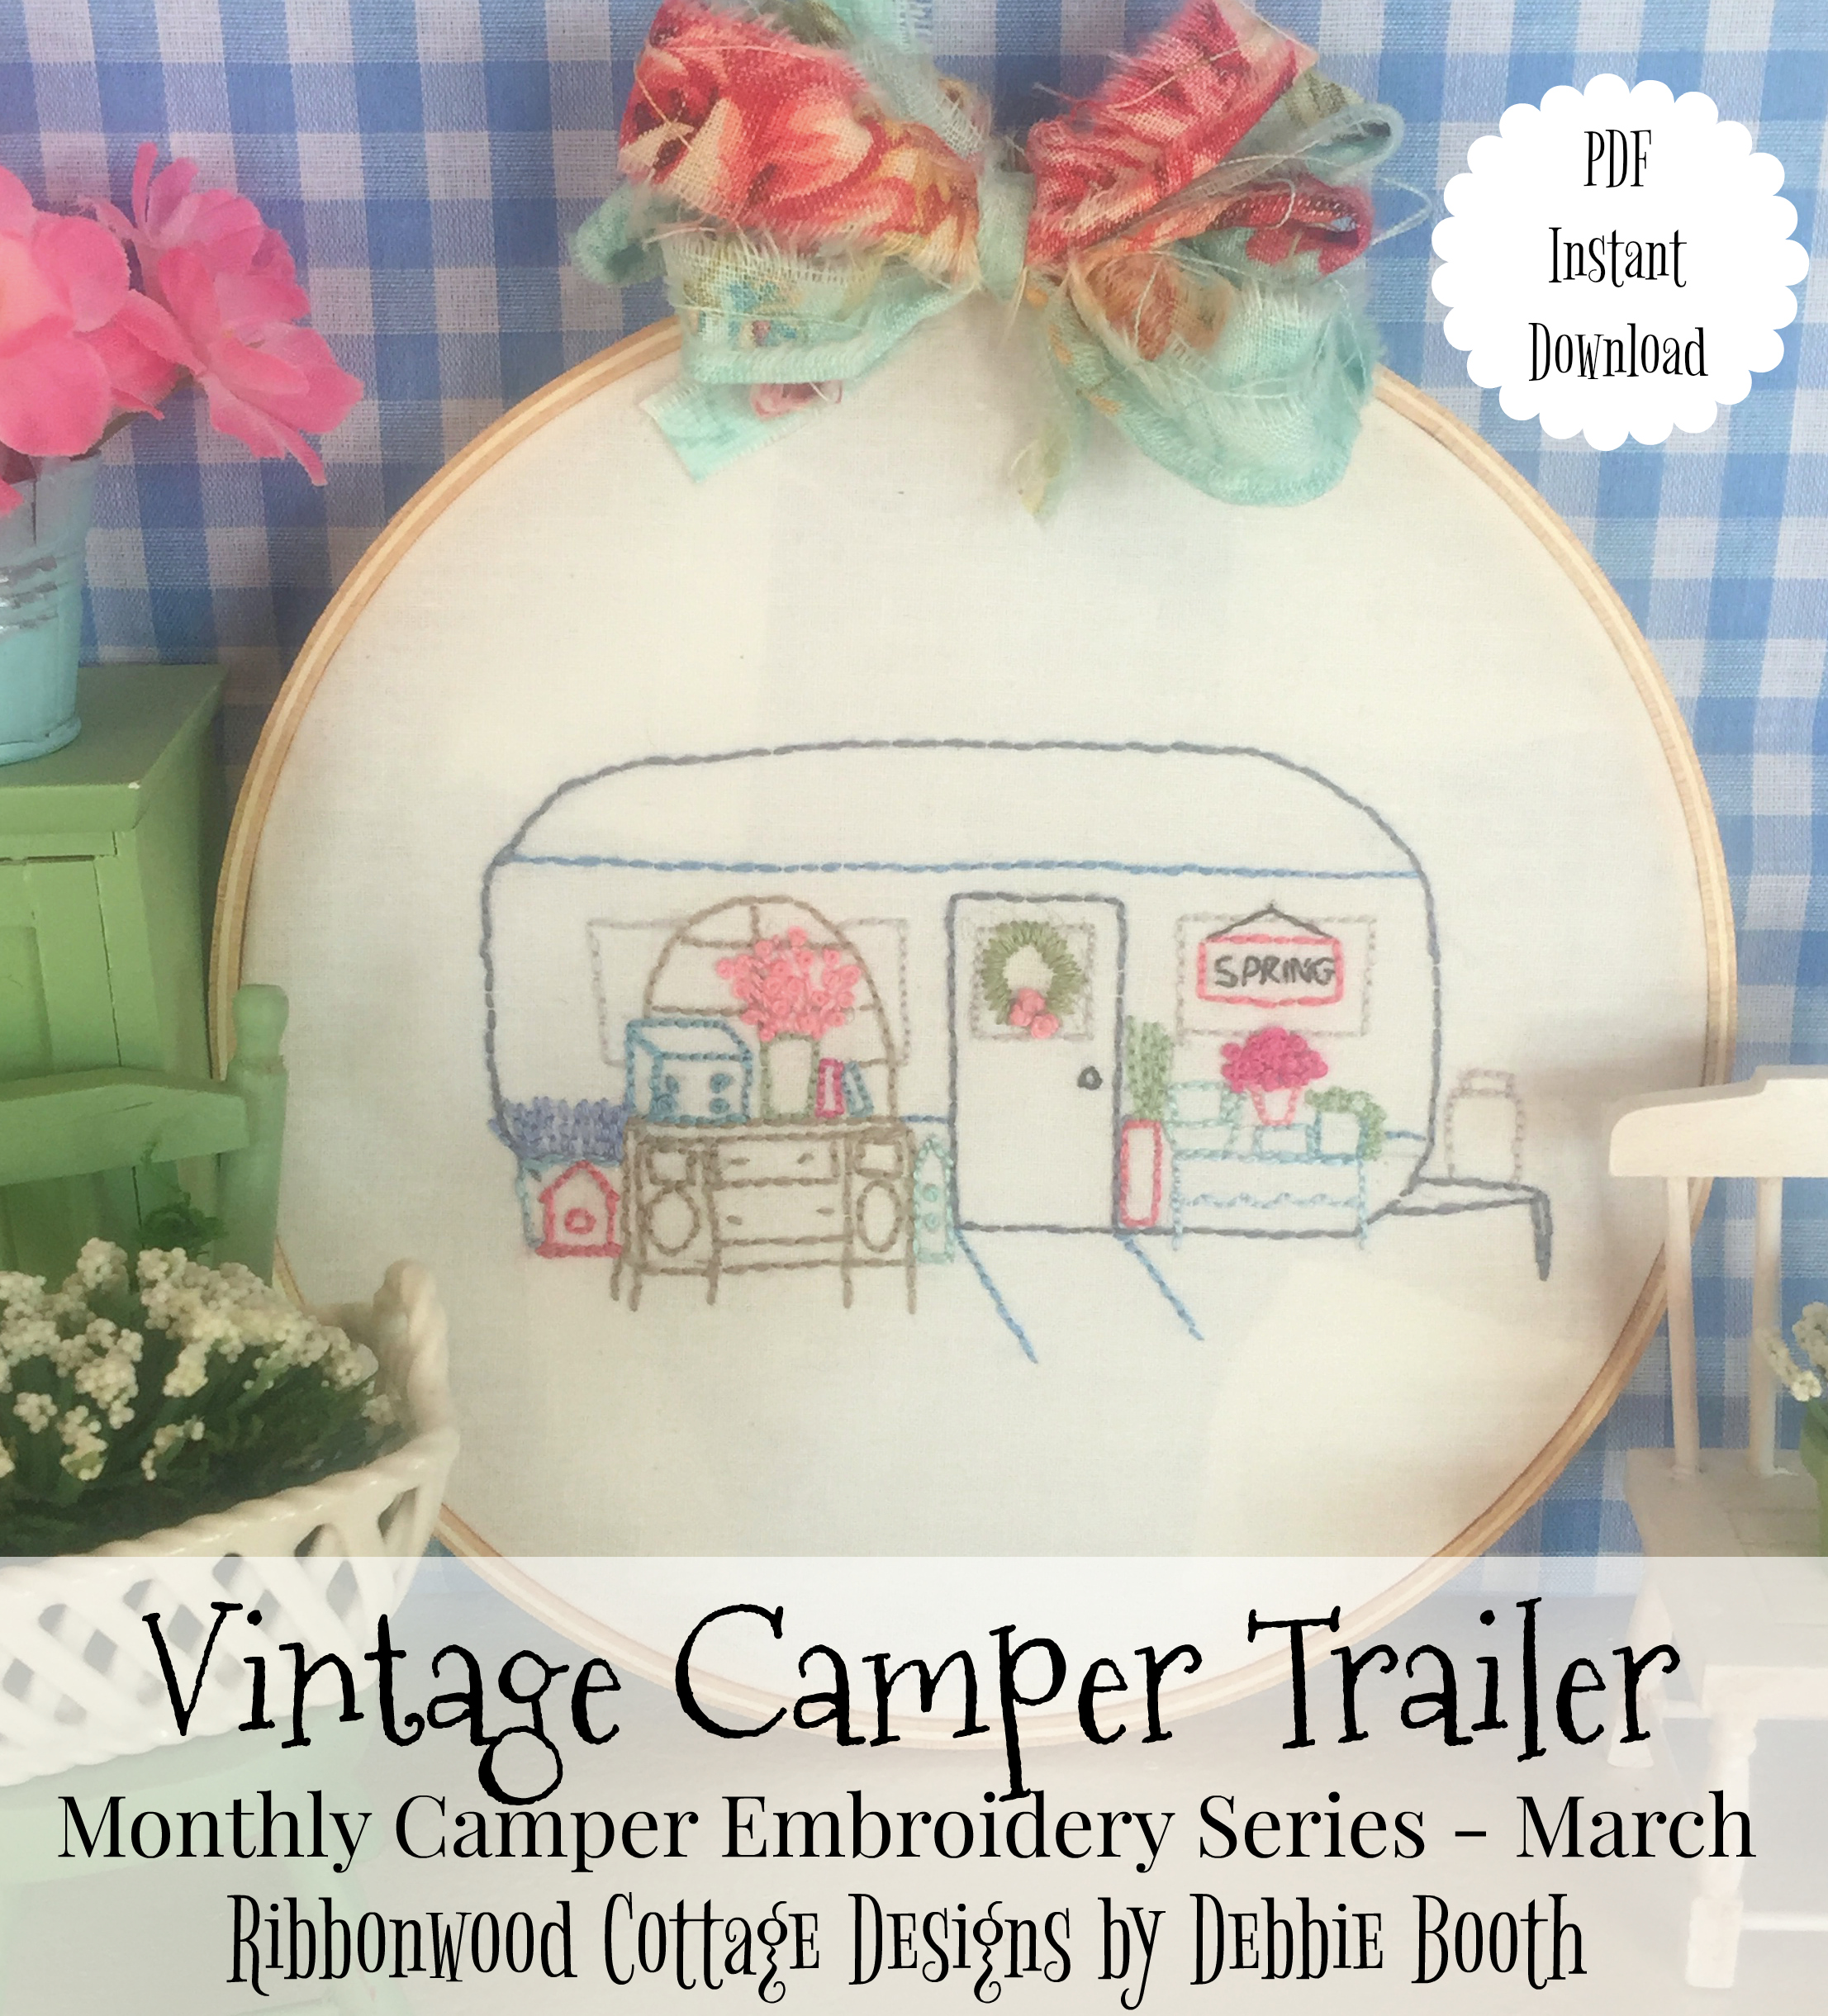 March Vintage Camper Trailer Embroidery Monthly series